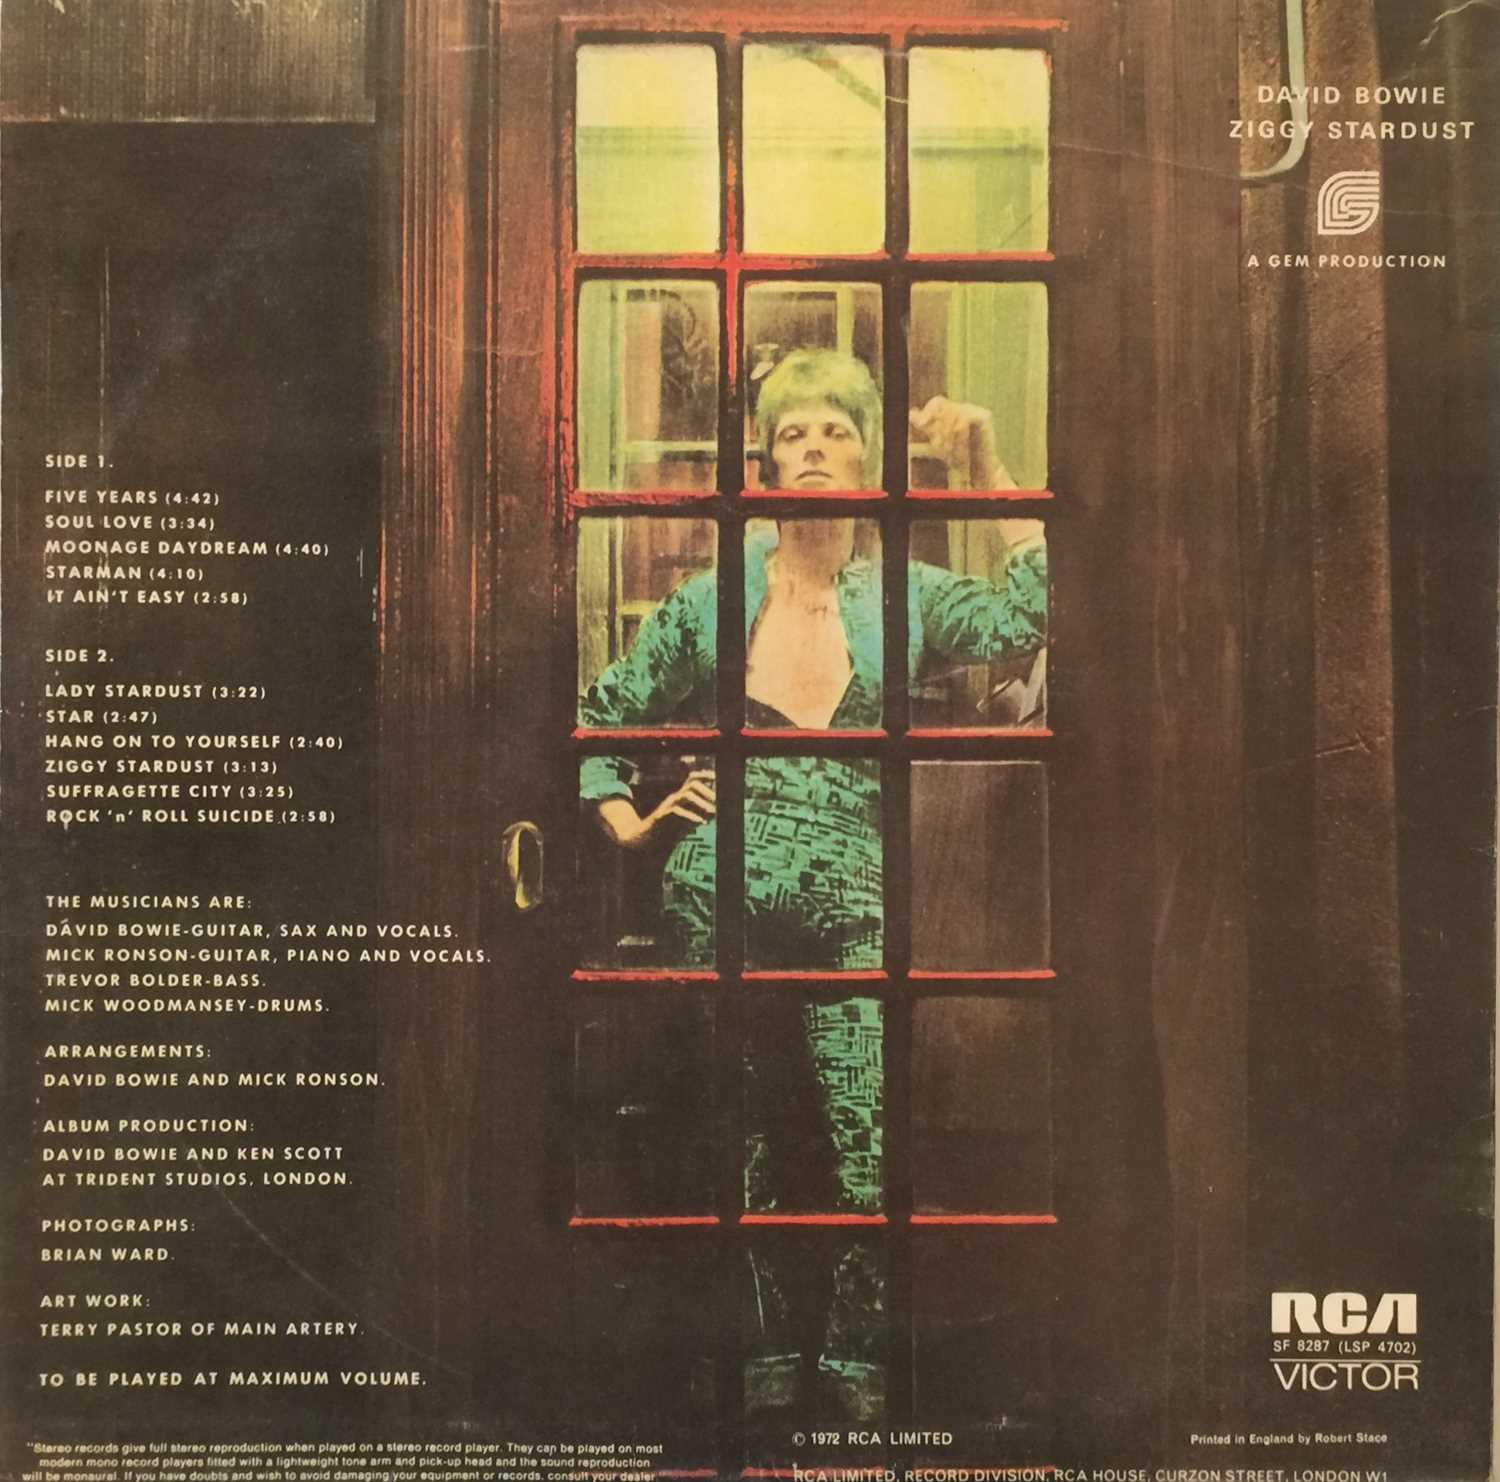 DAVID BOWIE - UK PRESSING LP COLLECTION - Image 7 of 7